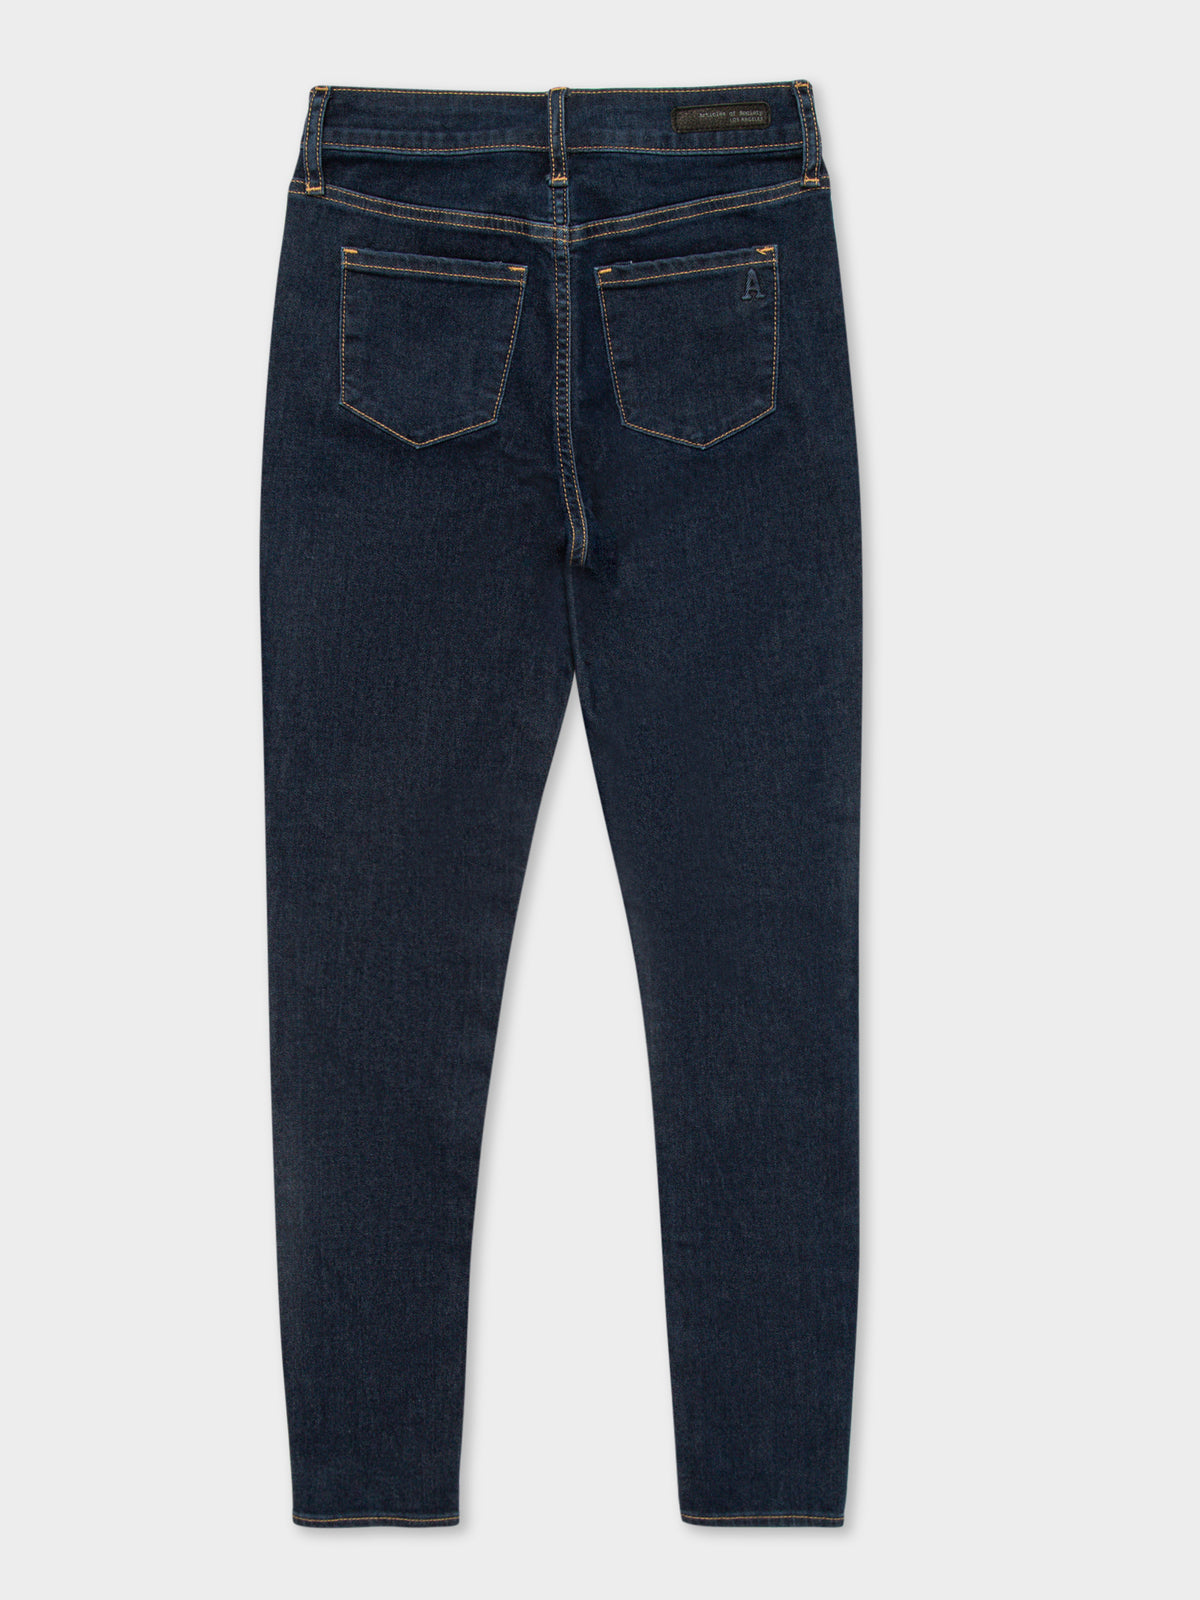 High Lisa Skinny Ankle Jeans in Dark Mid Wash Denim